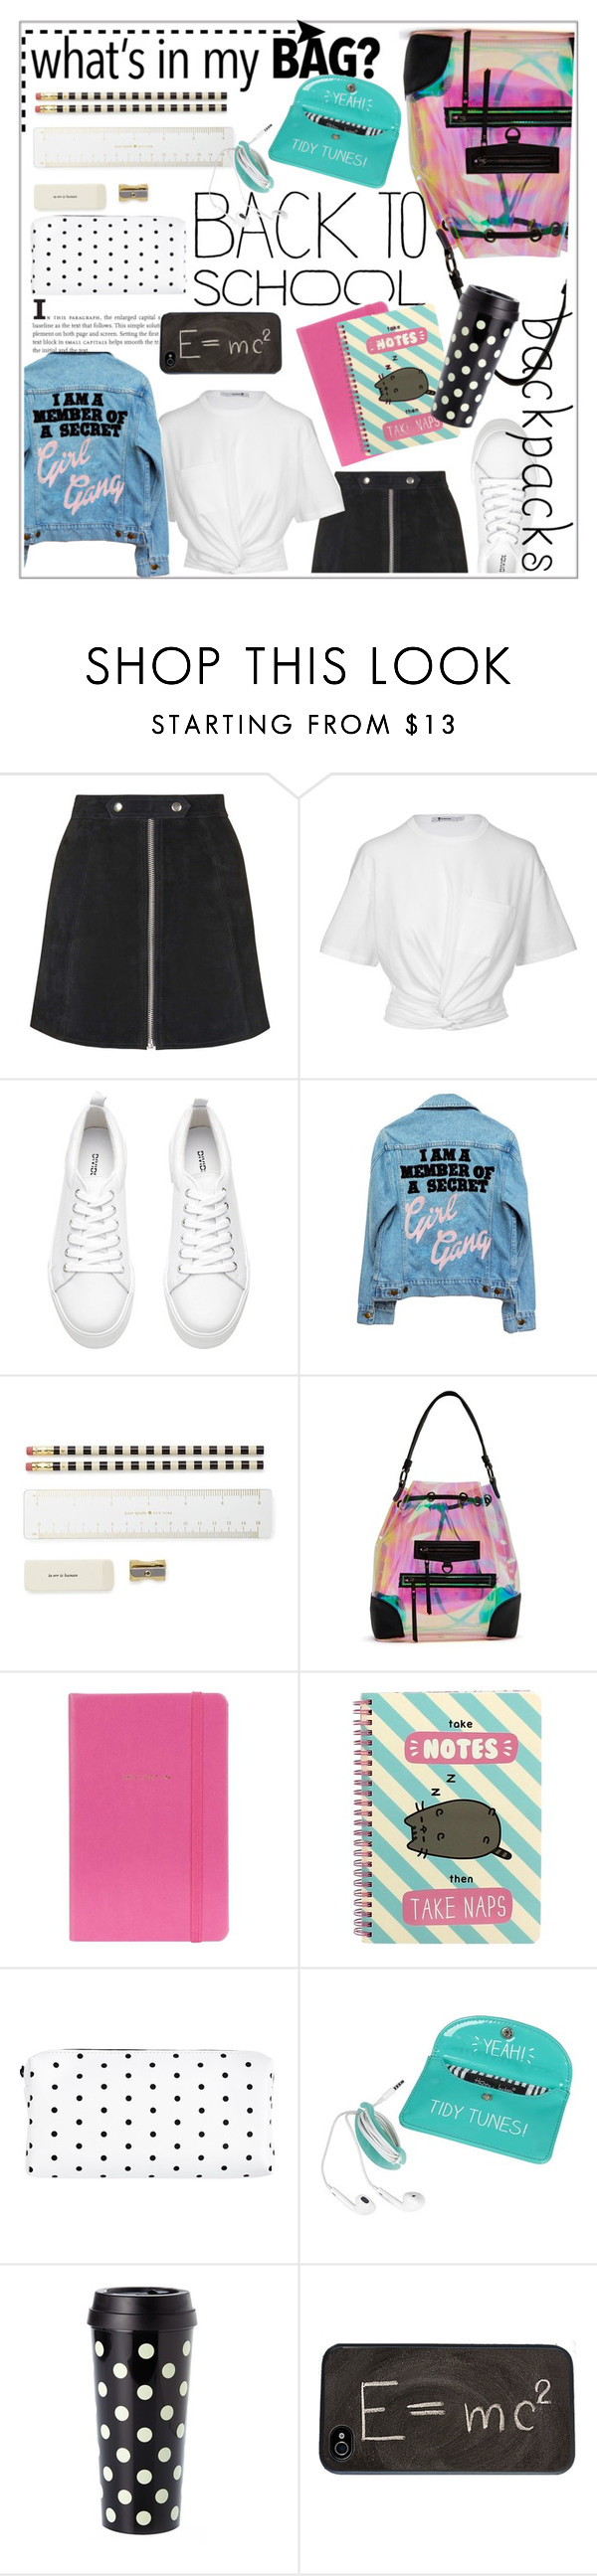 """""""In My Backpack"""" by bombaysapphire ❤ liked on Polyvore featuring Topshop, T By Alexander Wang, H&M, High Heels Suicide, Kate Spade, Nila Anthony, Pusheen, Theory, BackToSchool and casual"""